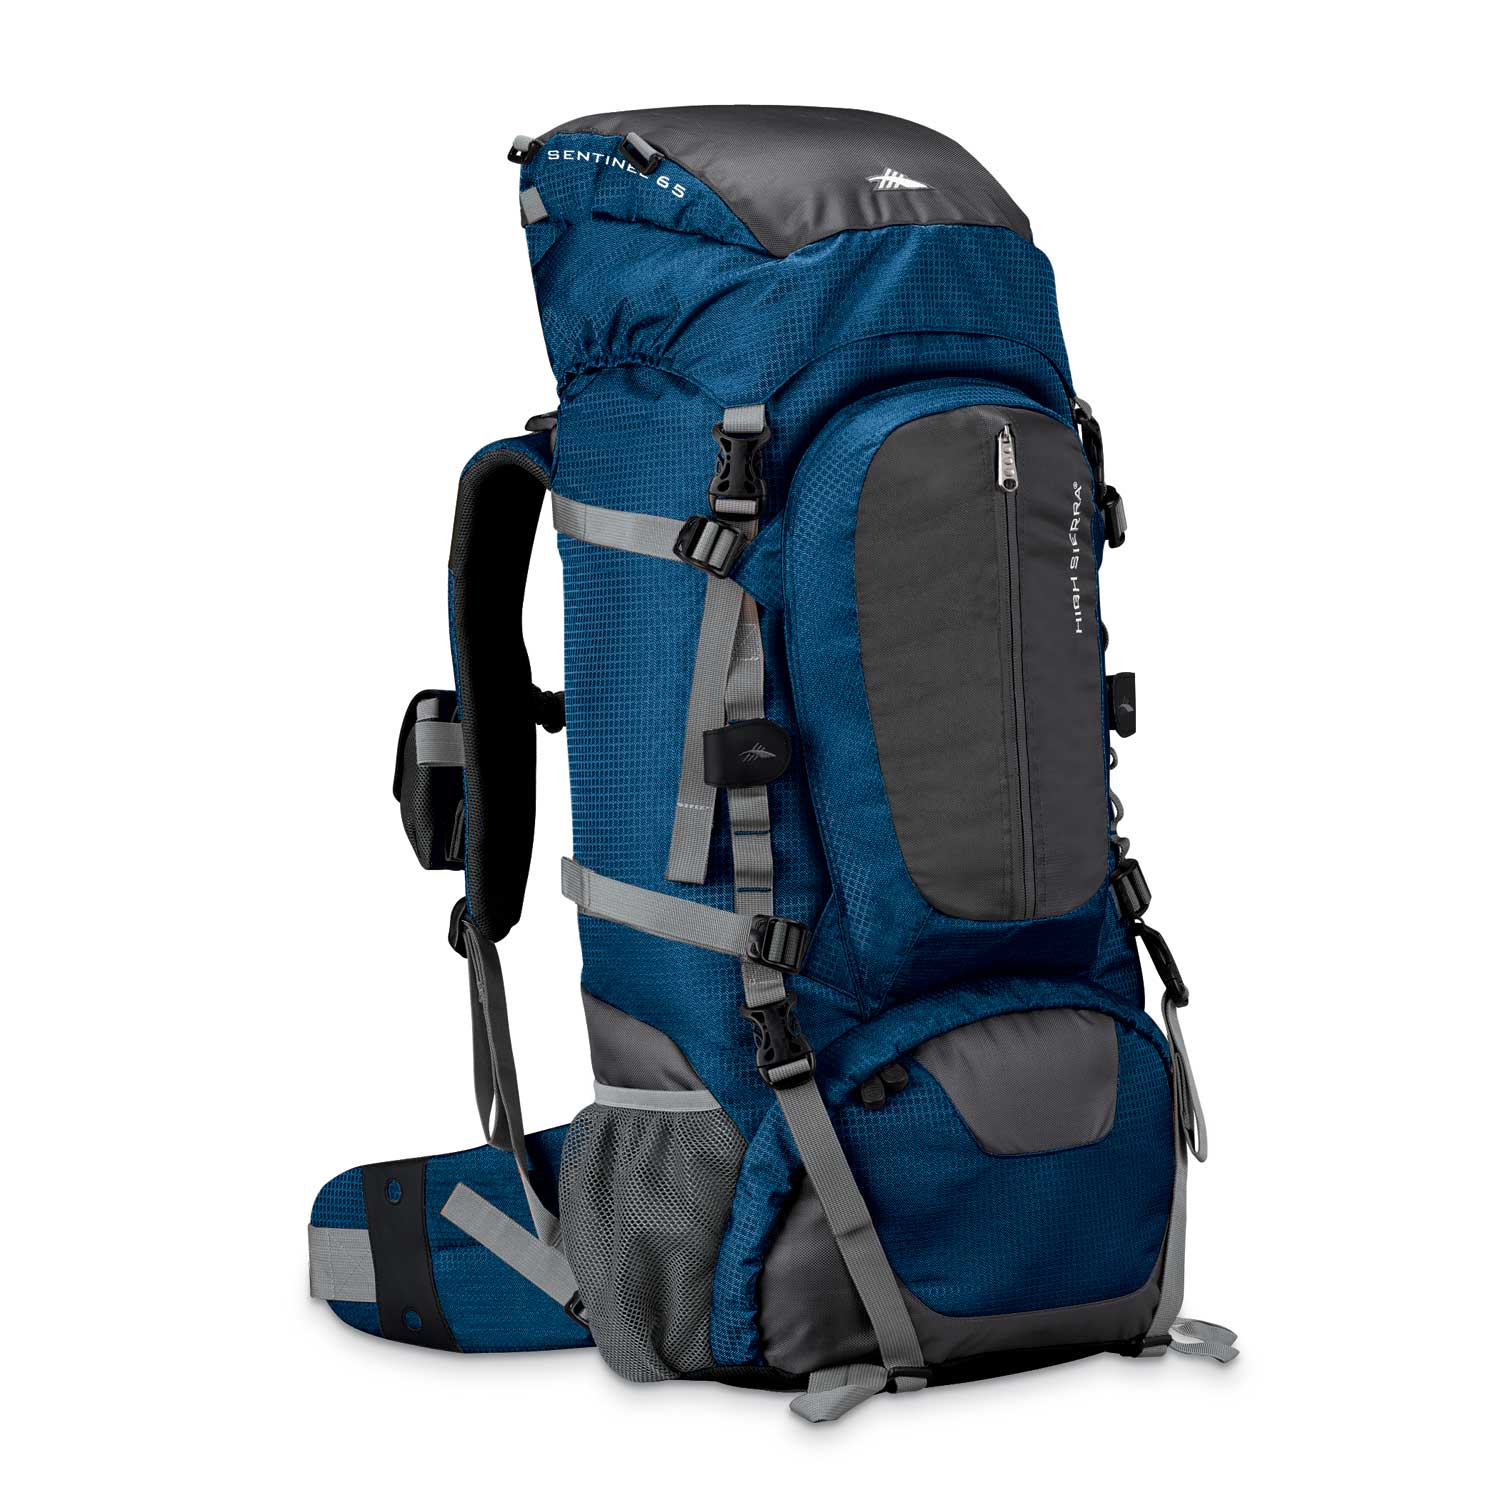 Backpacks Hiking lP2rca7g